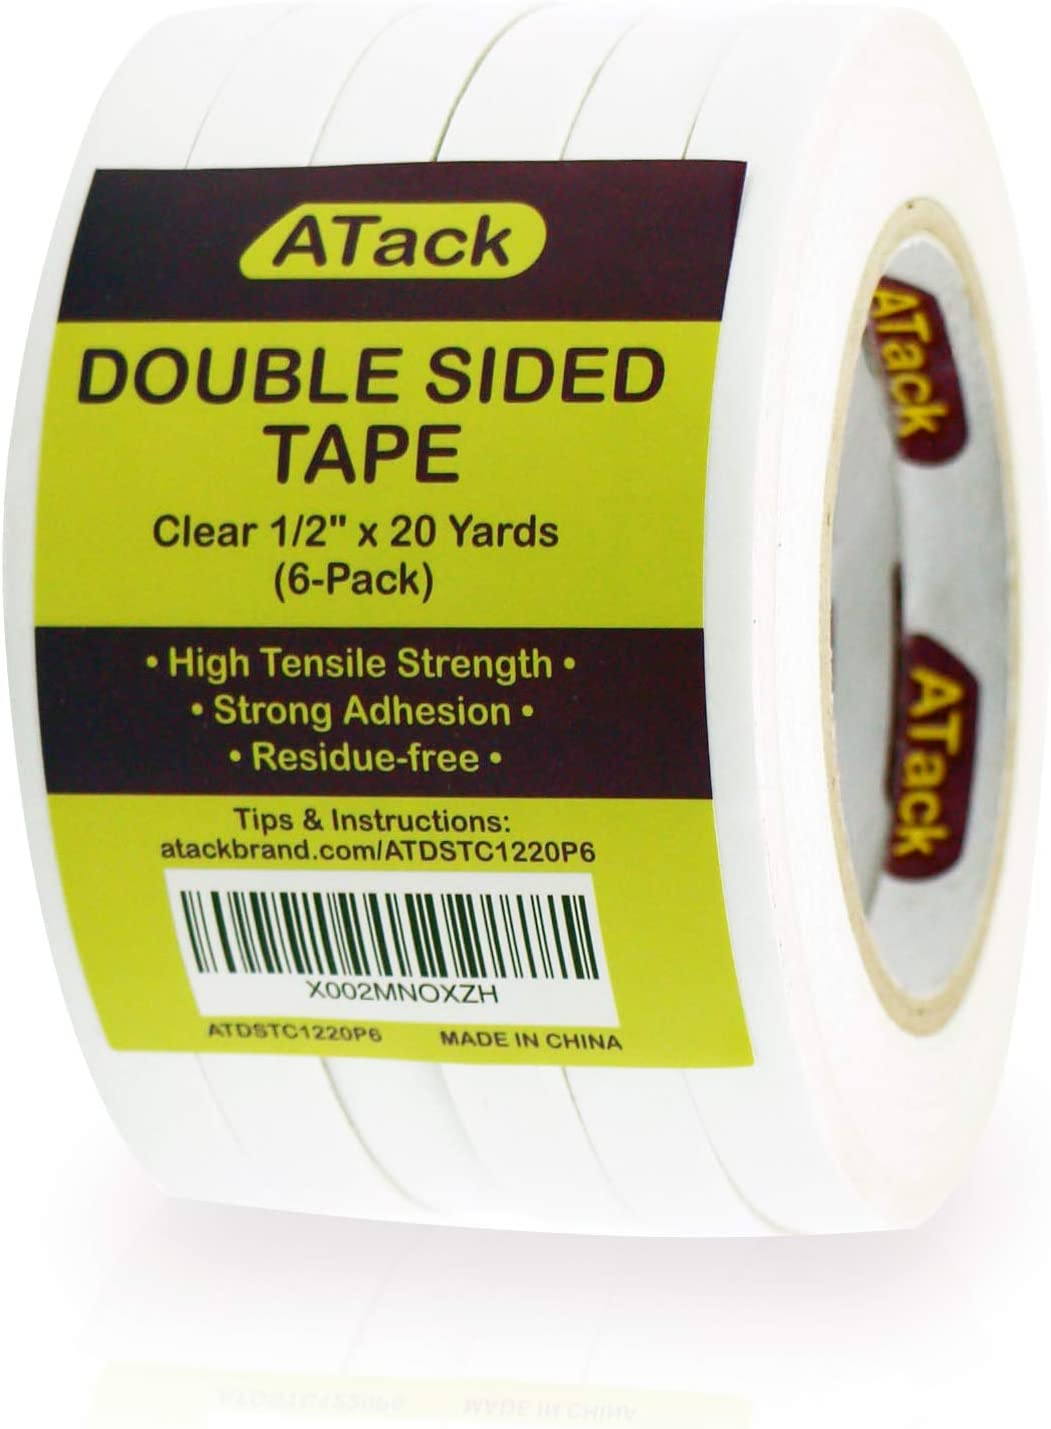 ATack Double Sided Tape, Clear, 1/2-Inch x 20-Yards (6-Pack) Wall Safe Transparent Heavy-Duty Double Sides Self Sticky Wall Fabric Tape for Wood Templates, Furniture, Leather, Curtains and Craft